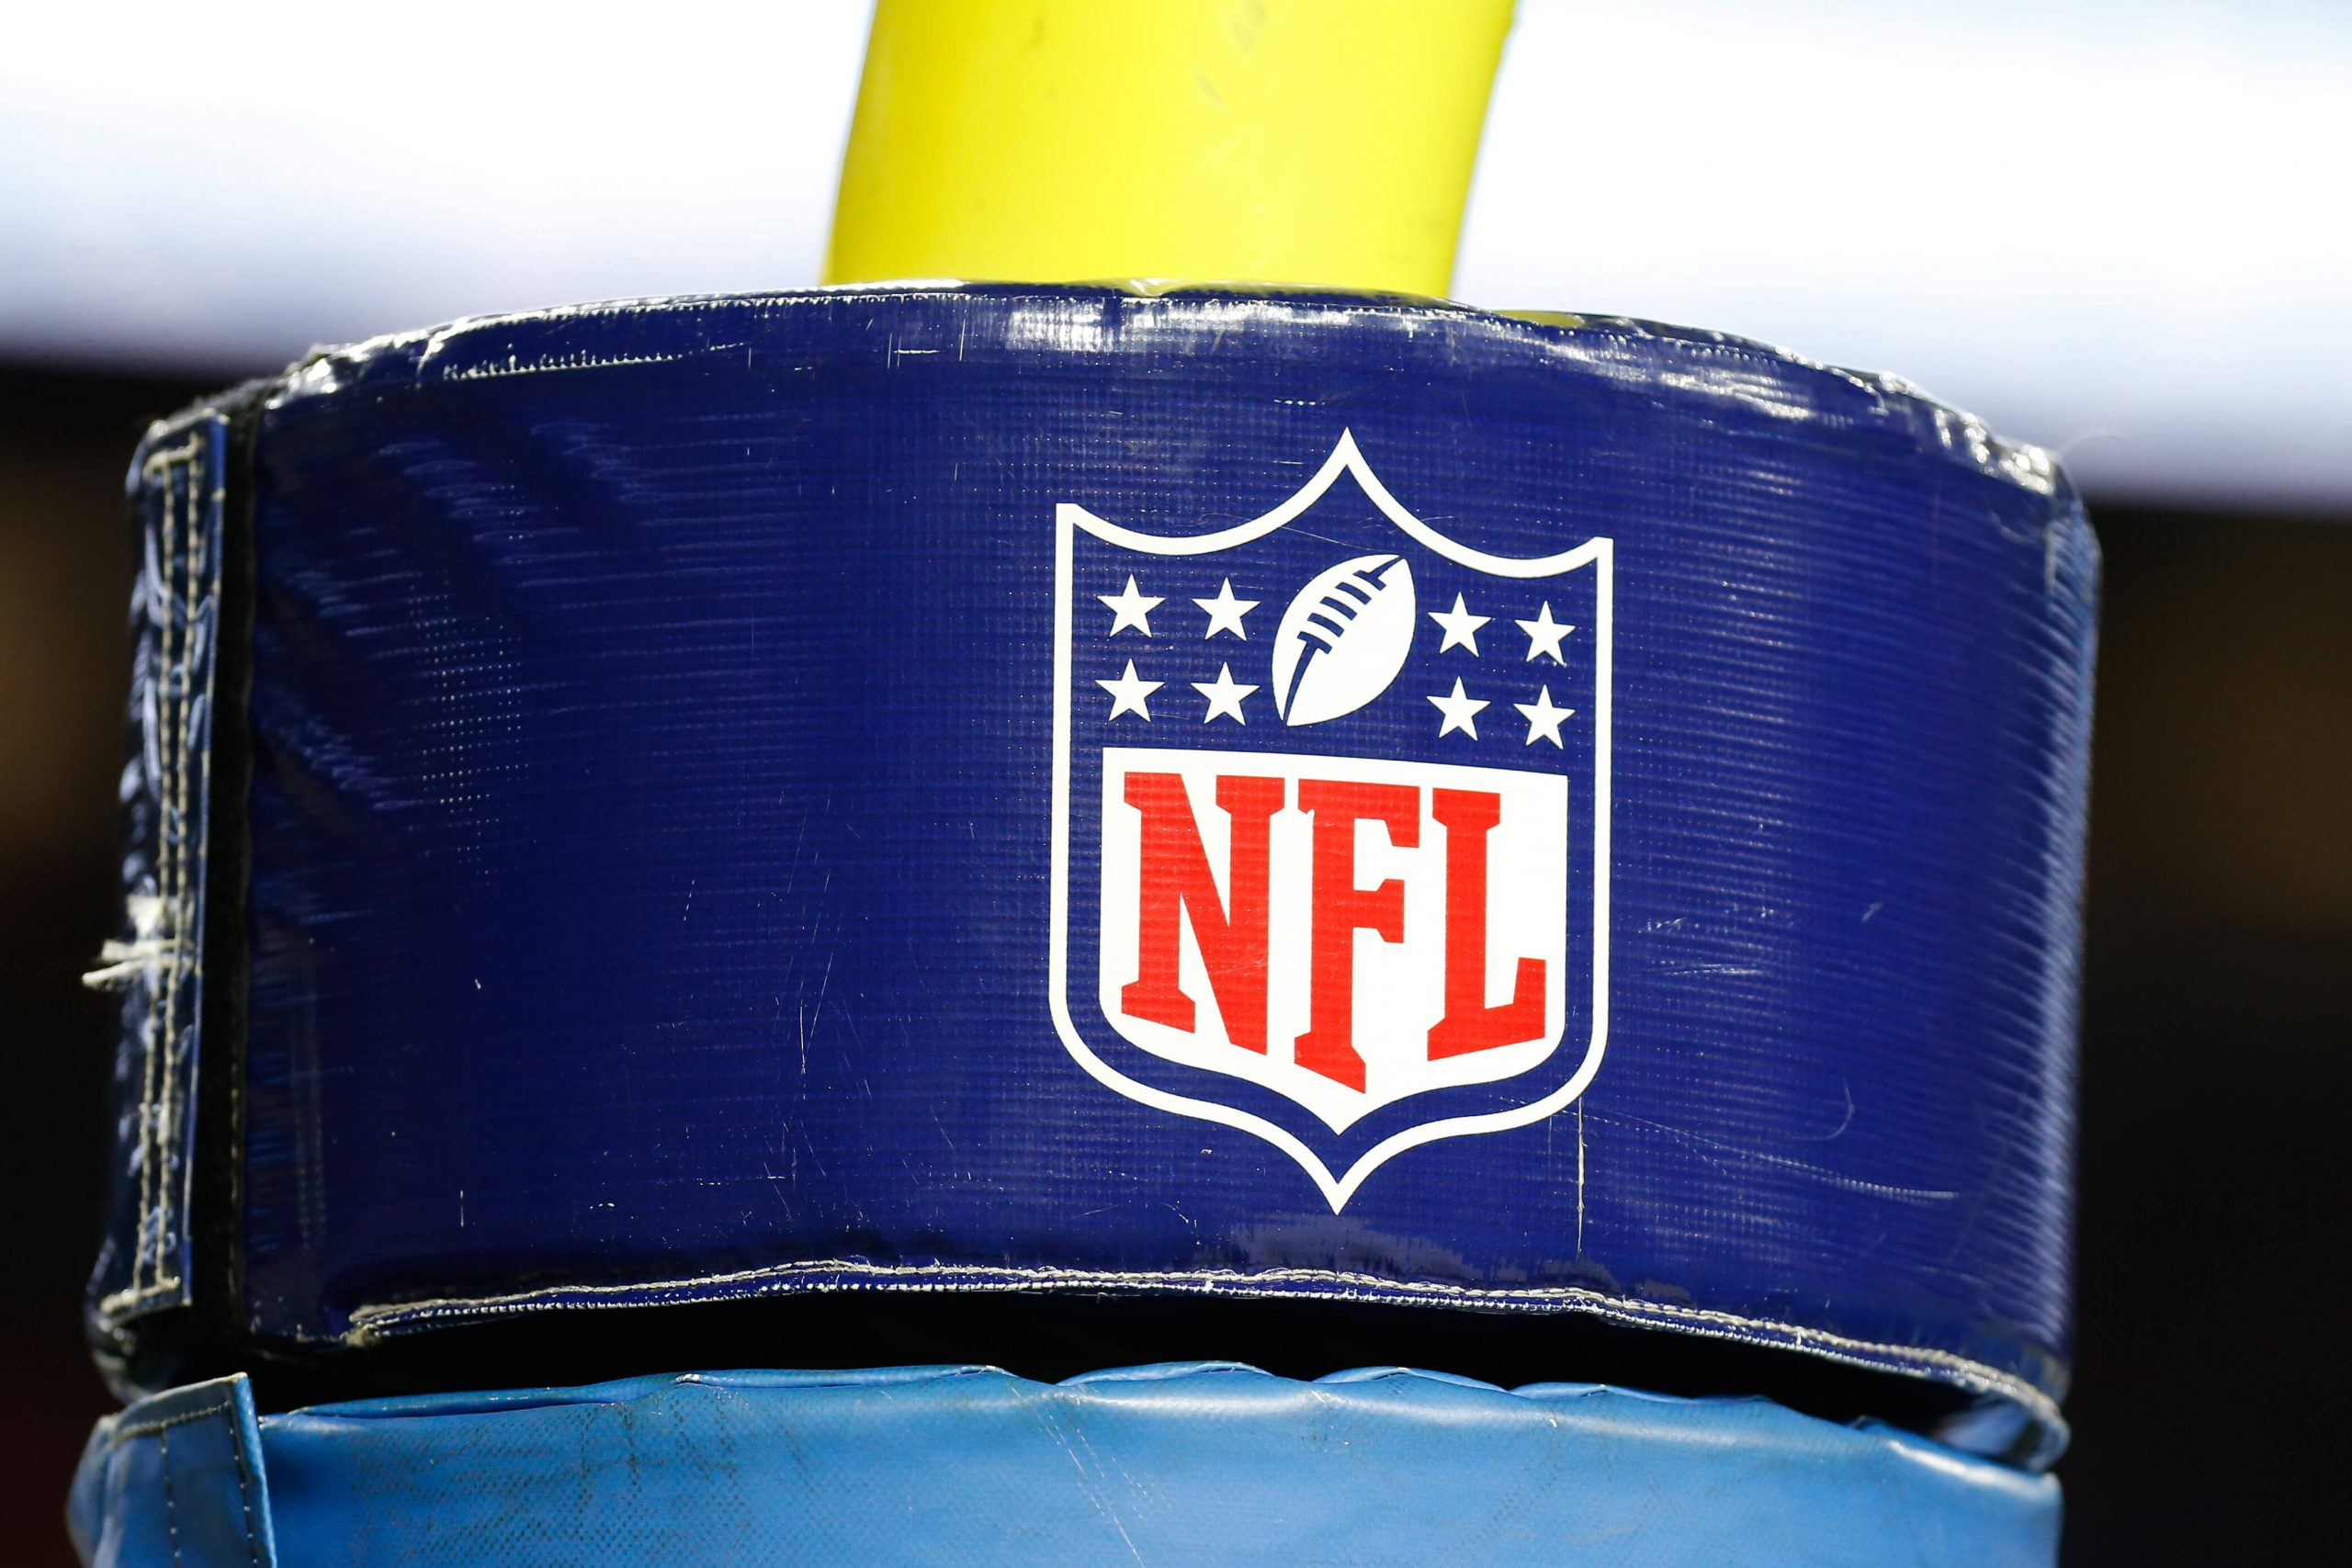 DETROIT, MI - SEPTEMBER 29: A general view of the NFL, American Football Herren, USA logo on the goal post padding is se